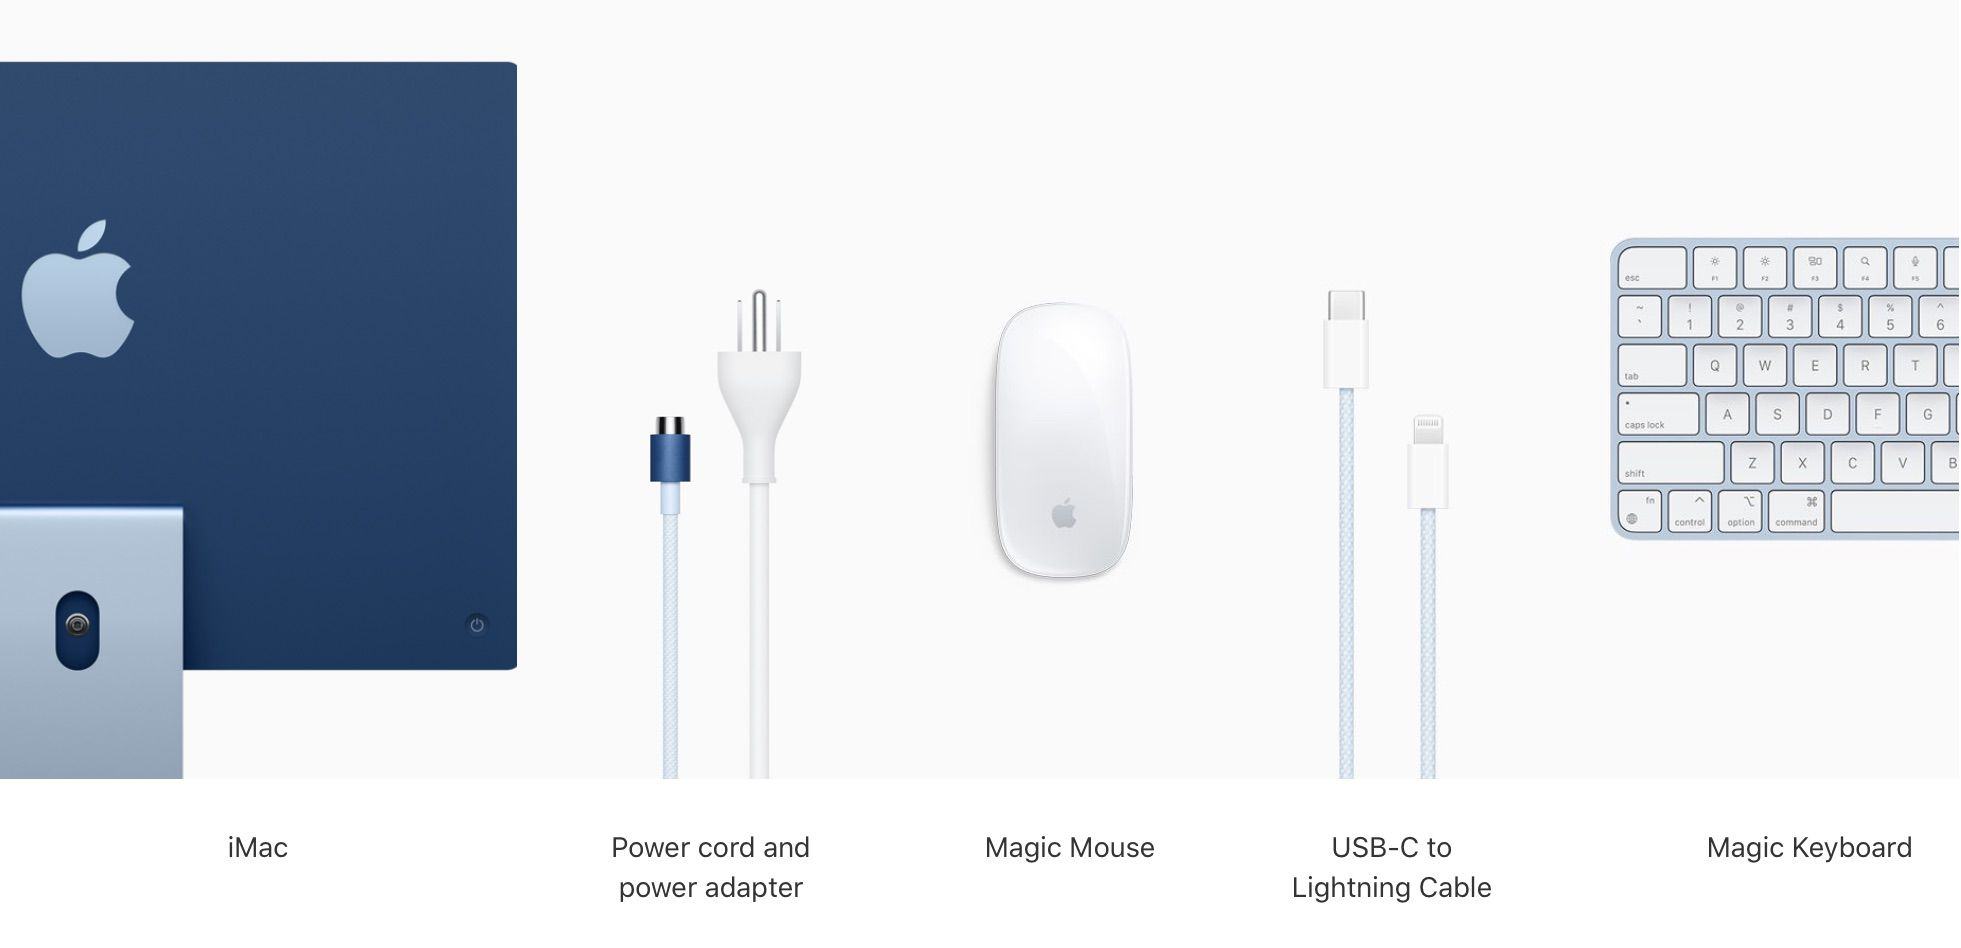 Apple's Bright New iMacs Come With Color-Matched Magic Keyboard Magic Mouse Power Cord and USB-C Cable – MacRumors